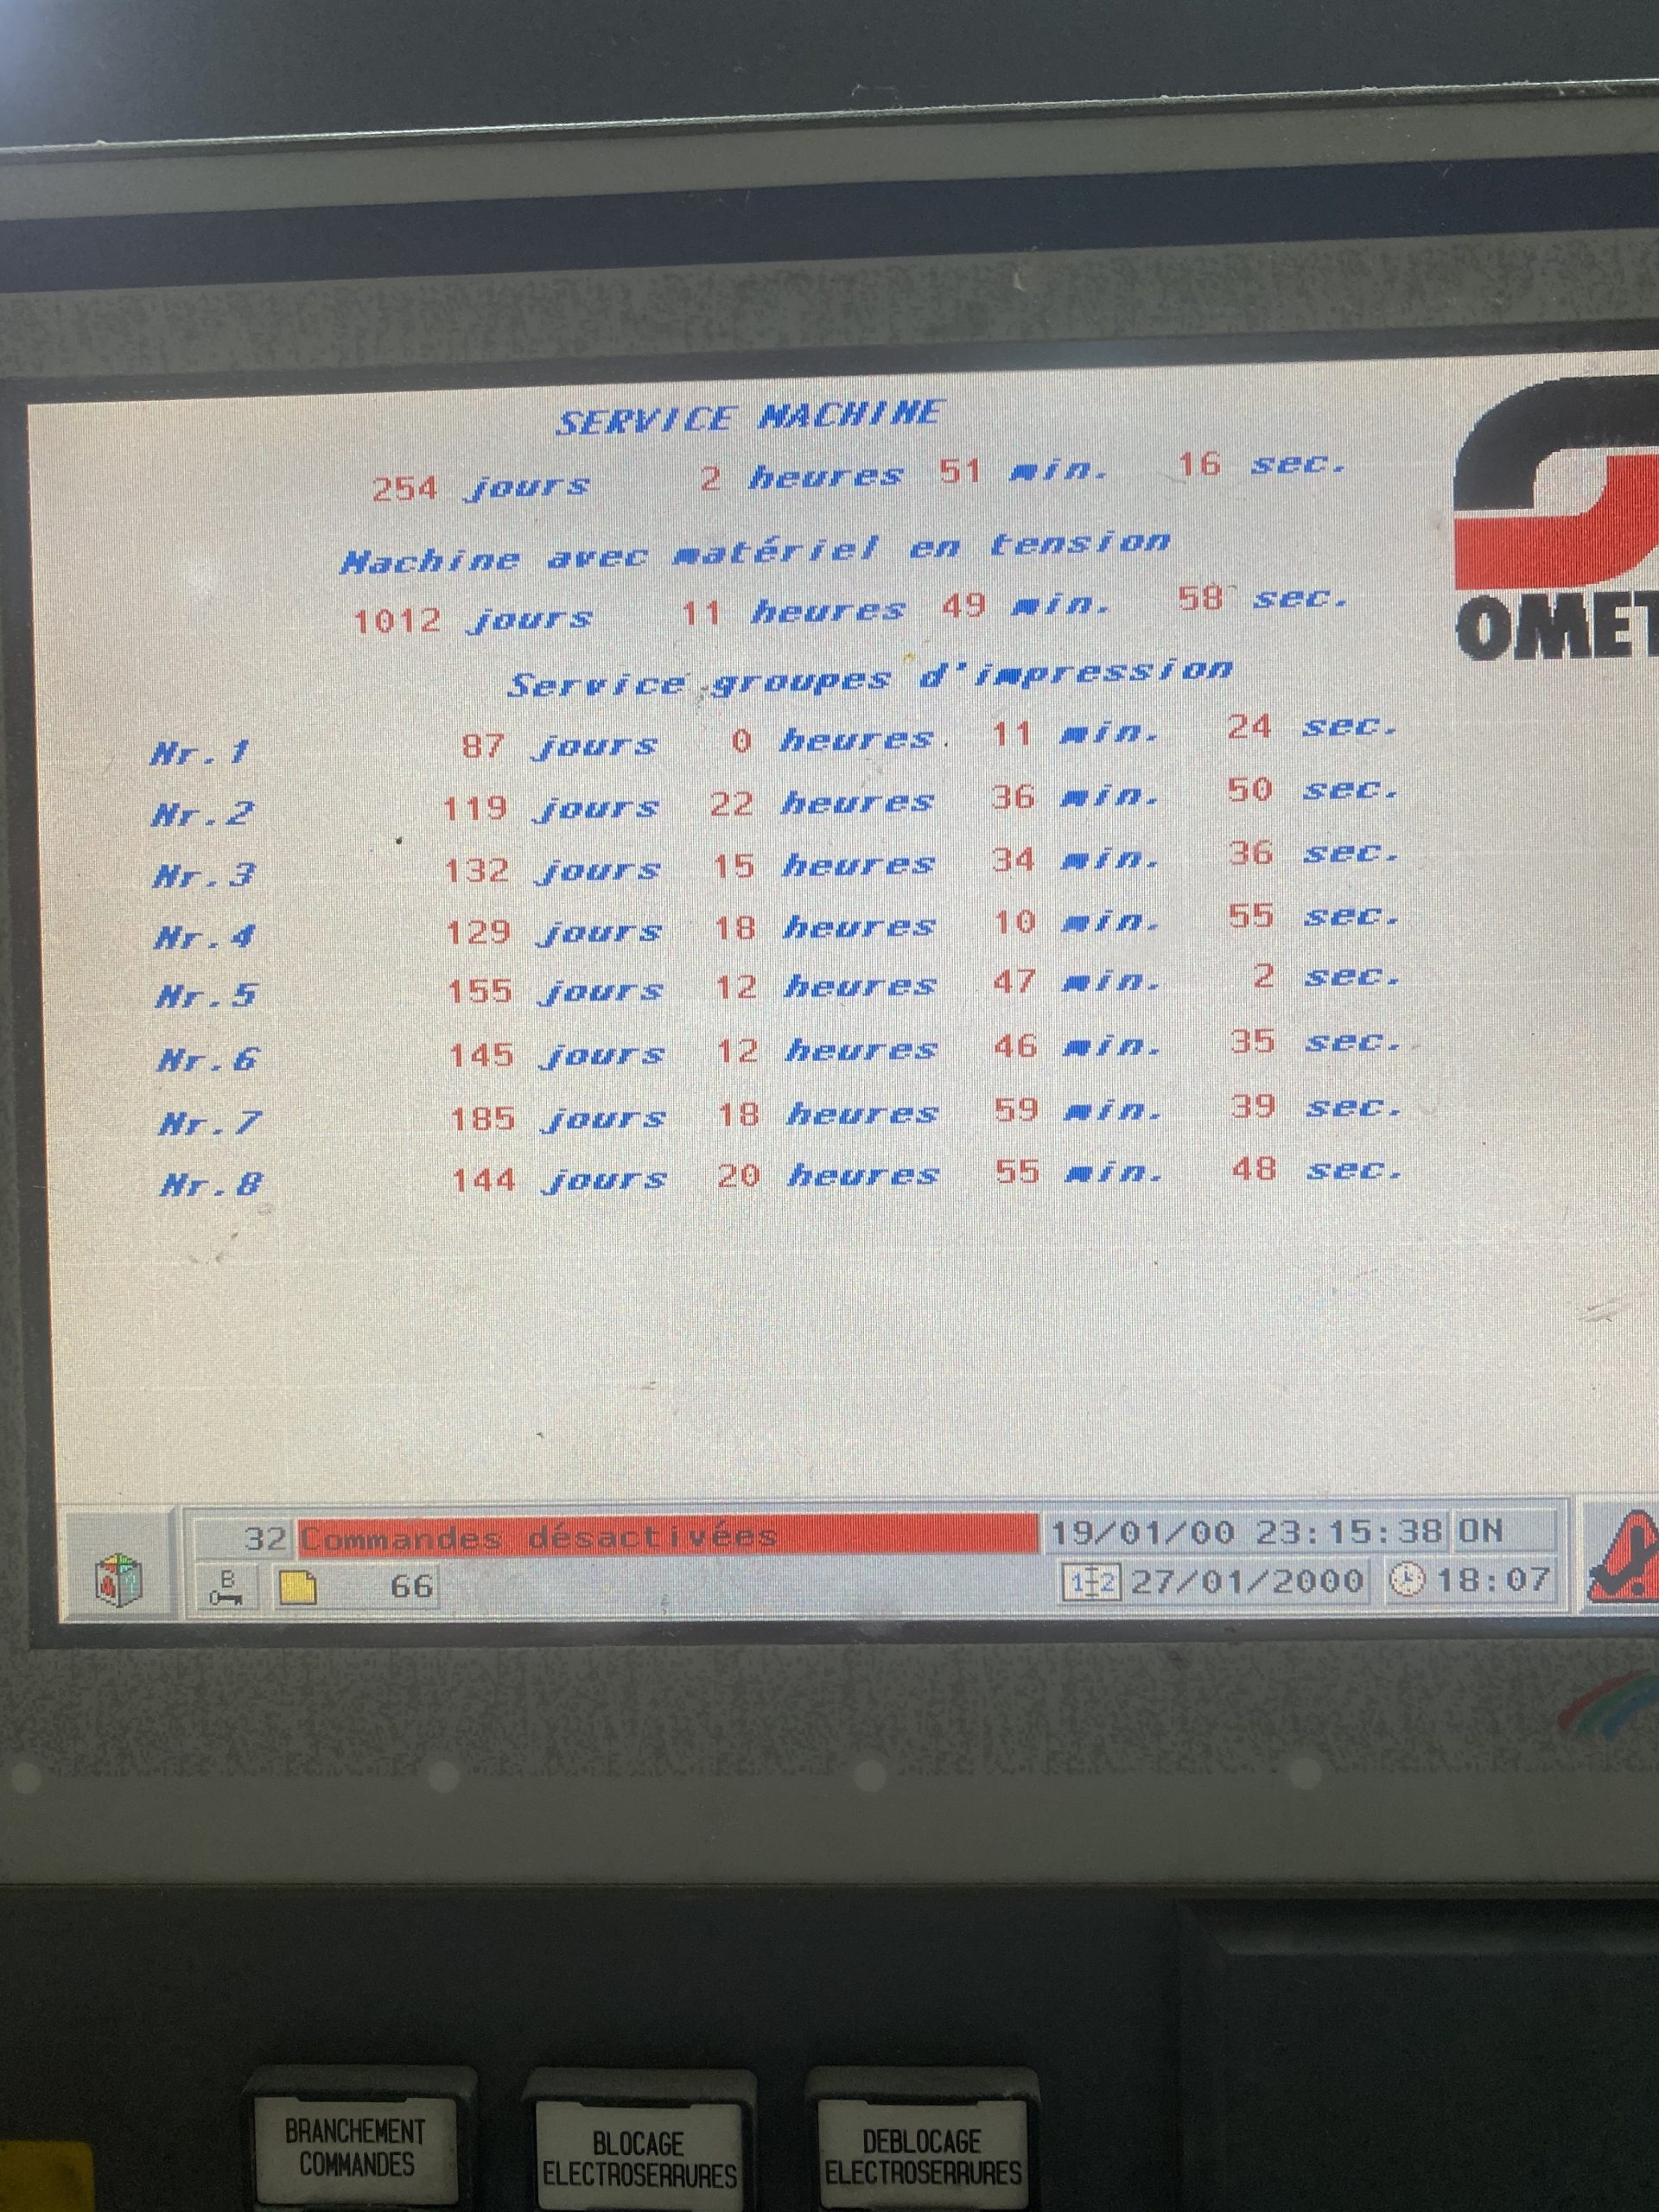 Omet Varyflex 520 - Used Flexo Printing Presses and Used Flexographic Equipment-4